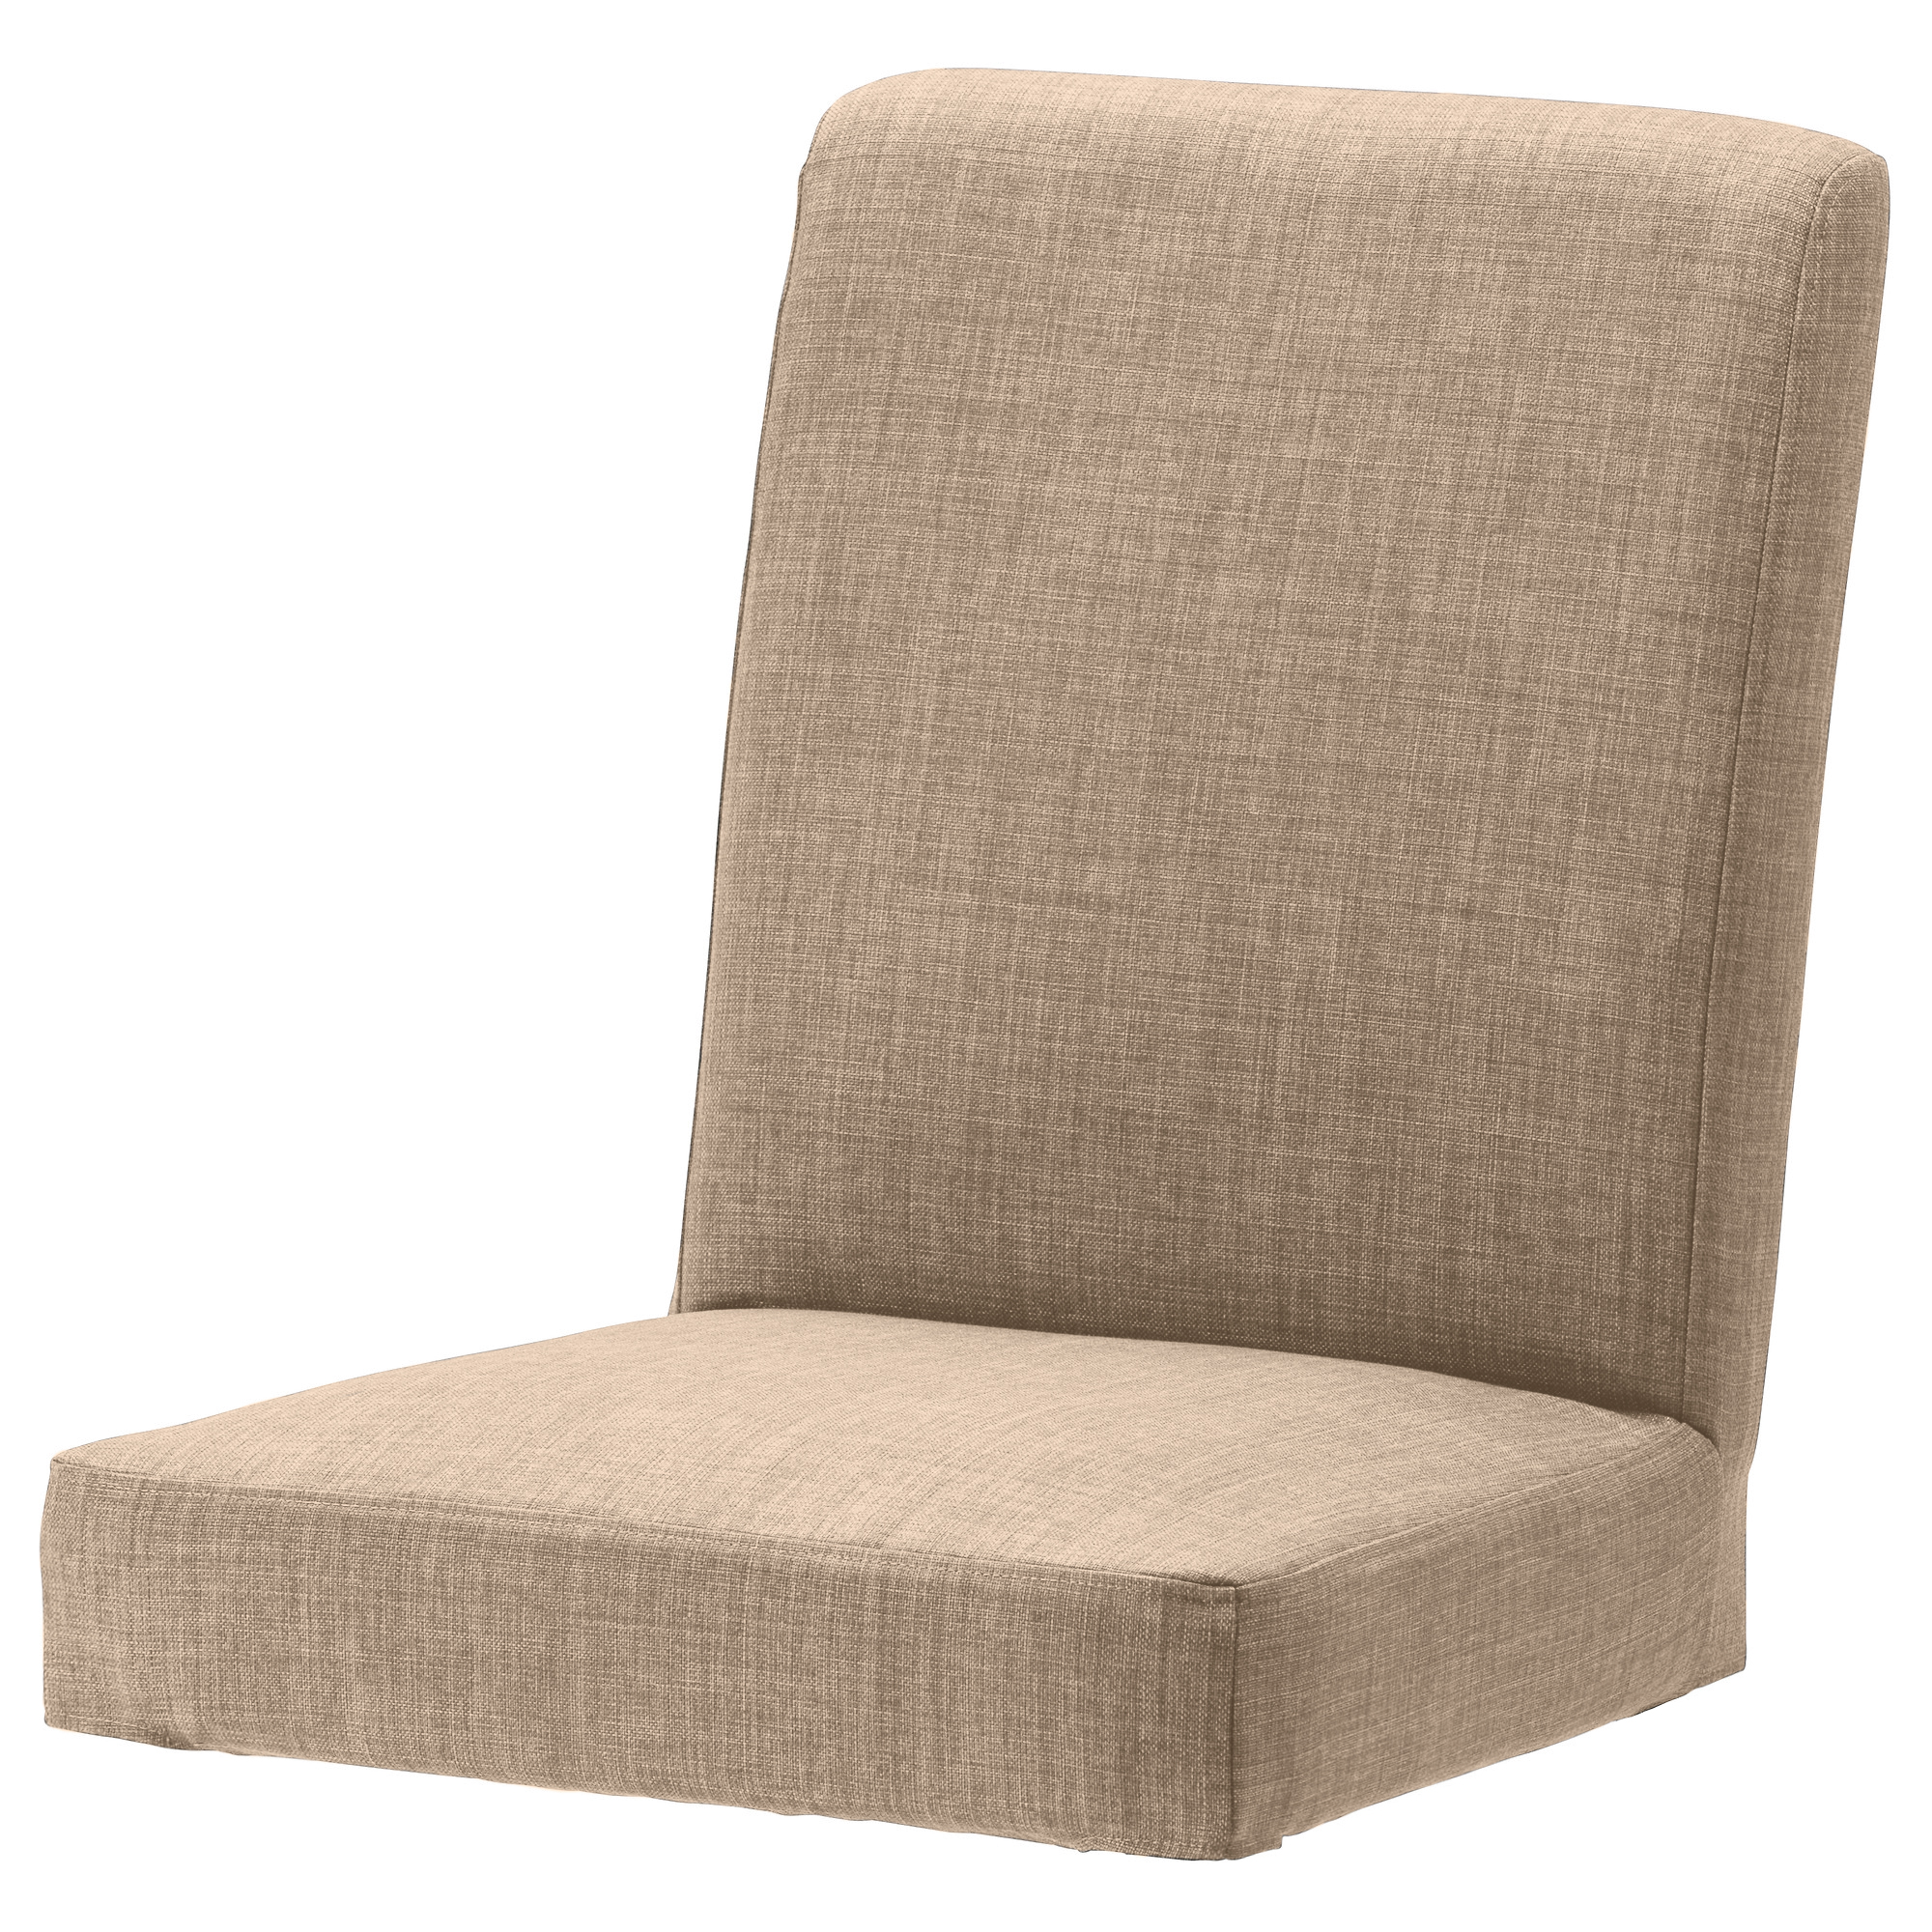 Replacement Slip Cover for Ikea Henriksdal Dining Chairs in Linen